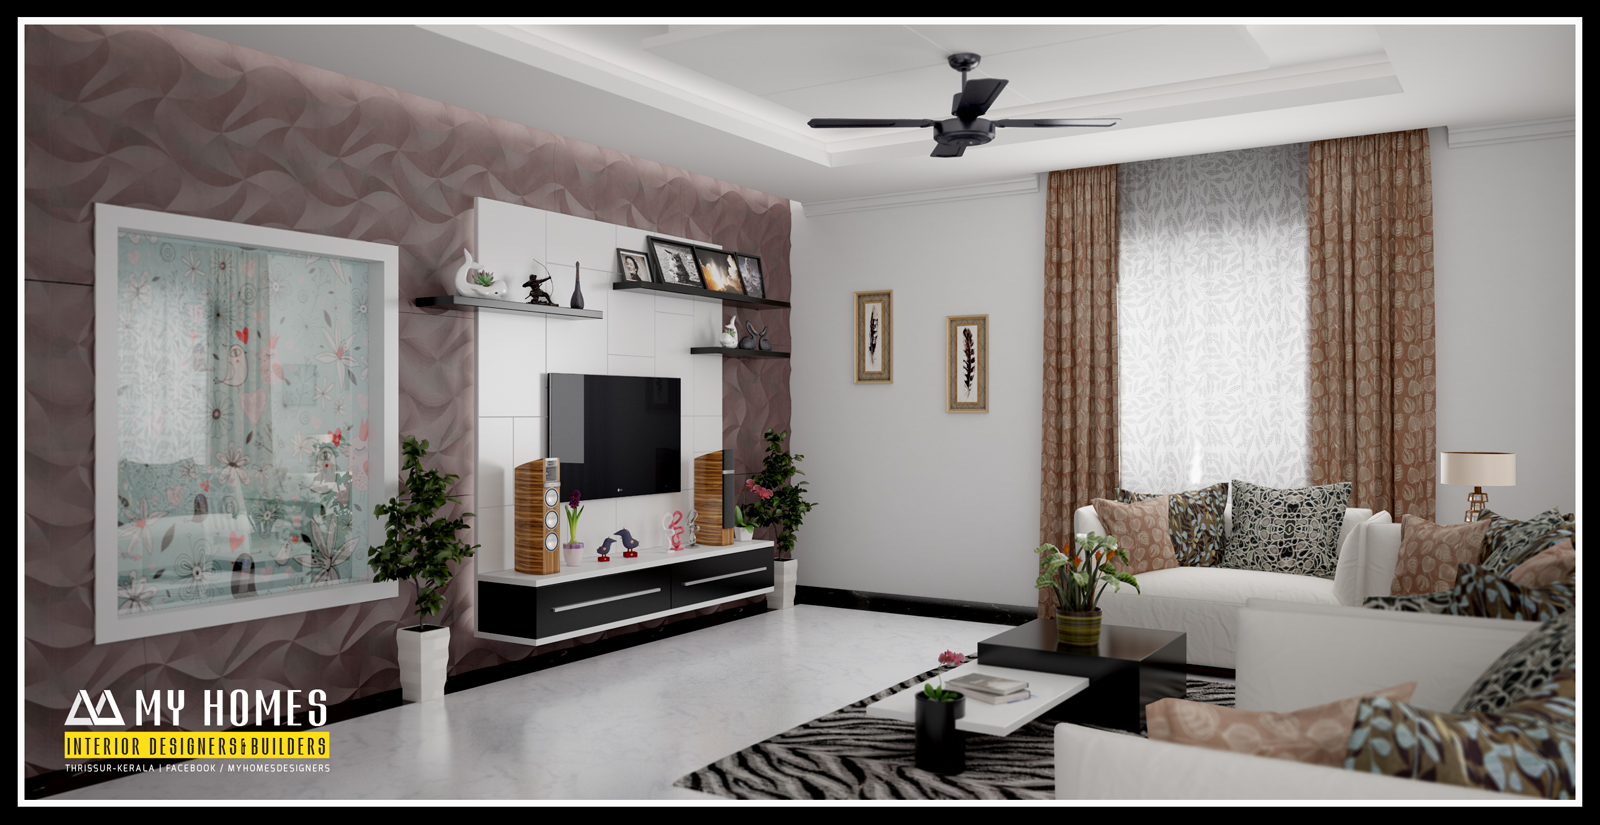 Kerala interior design ideas from designing company thrissur for Indoor design in home